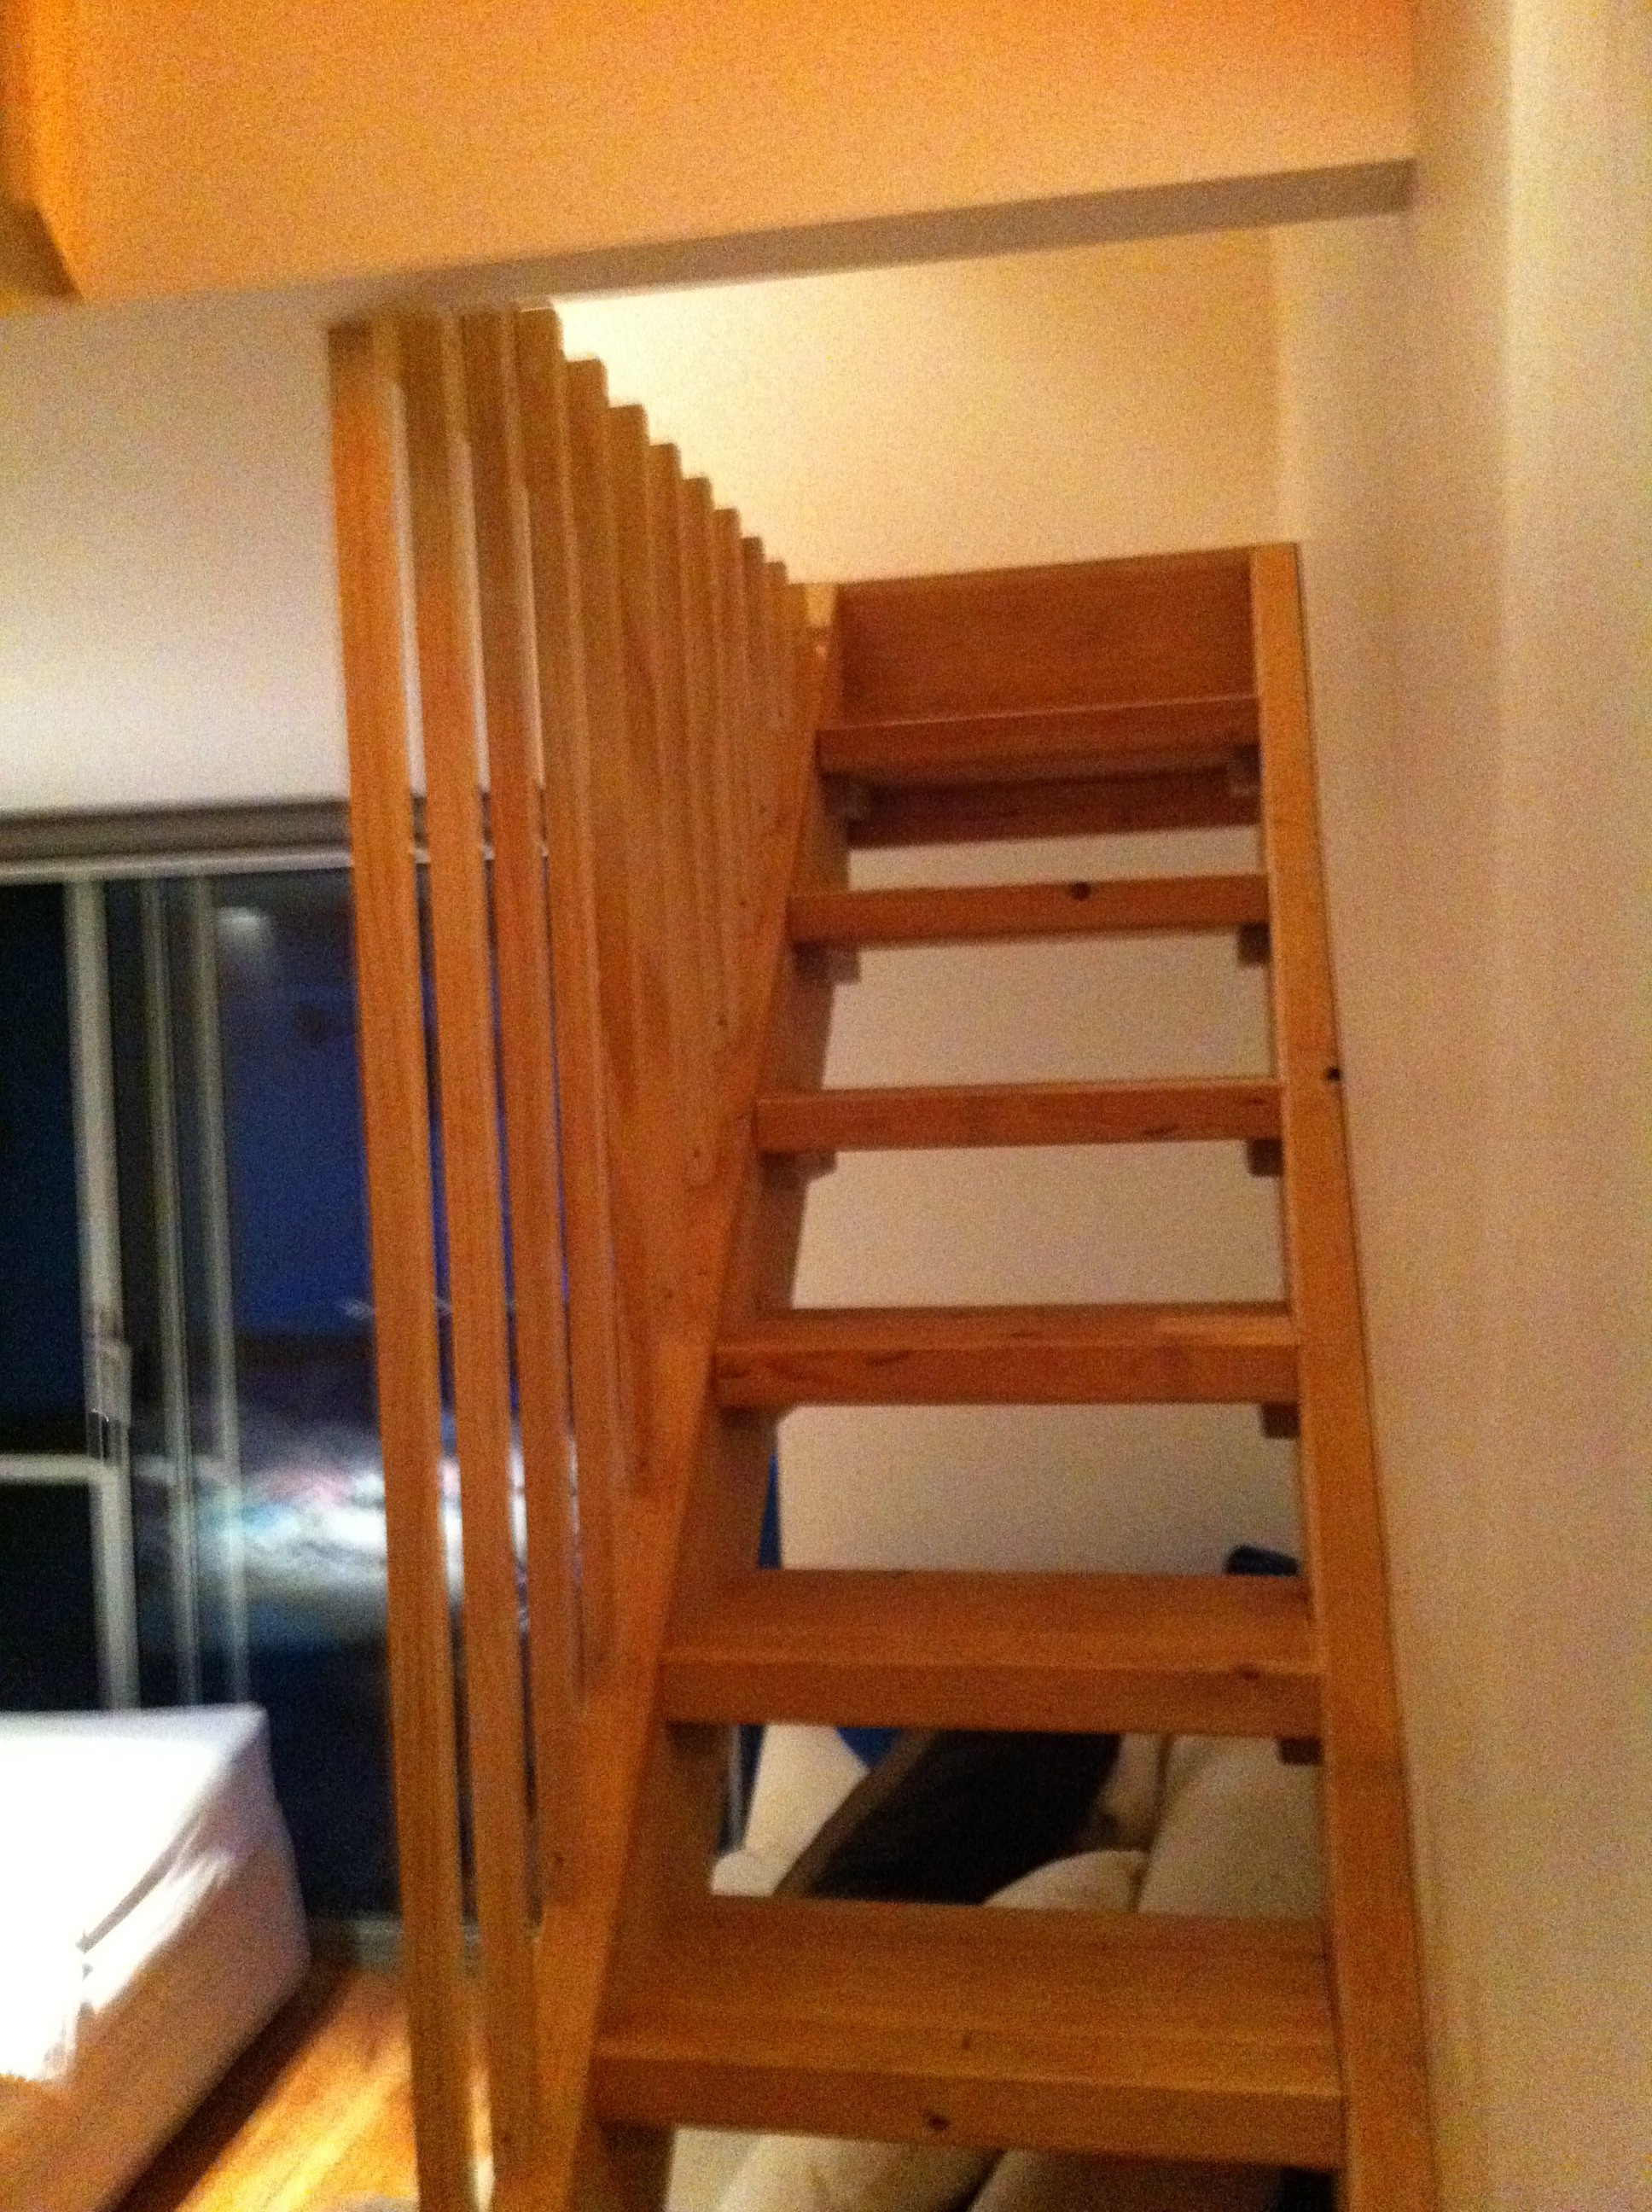 Pine timber stairs for a mezzanine floor avon building for How to build a mezzanine floor for bedroom